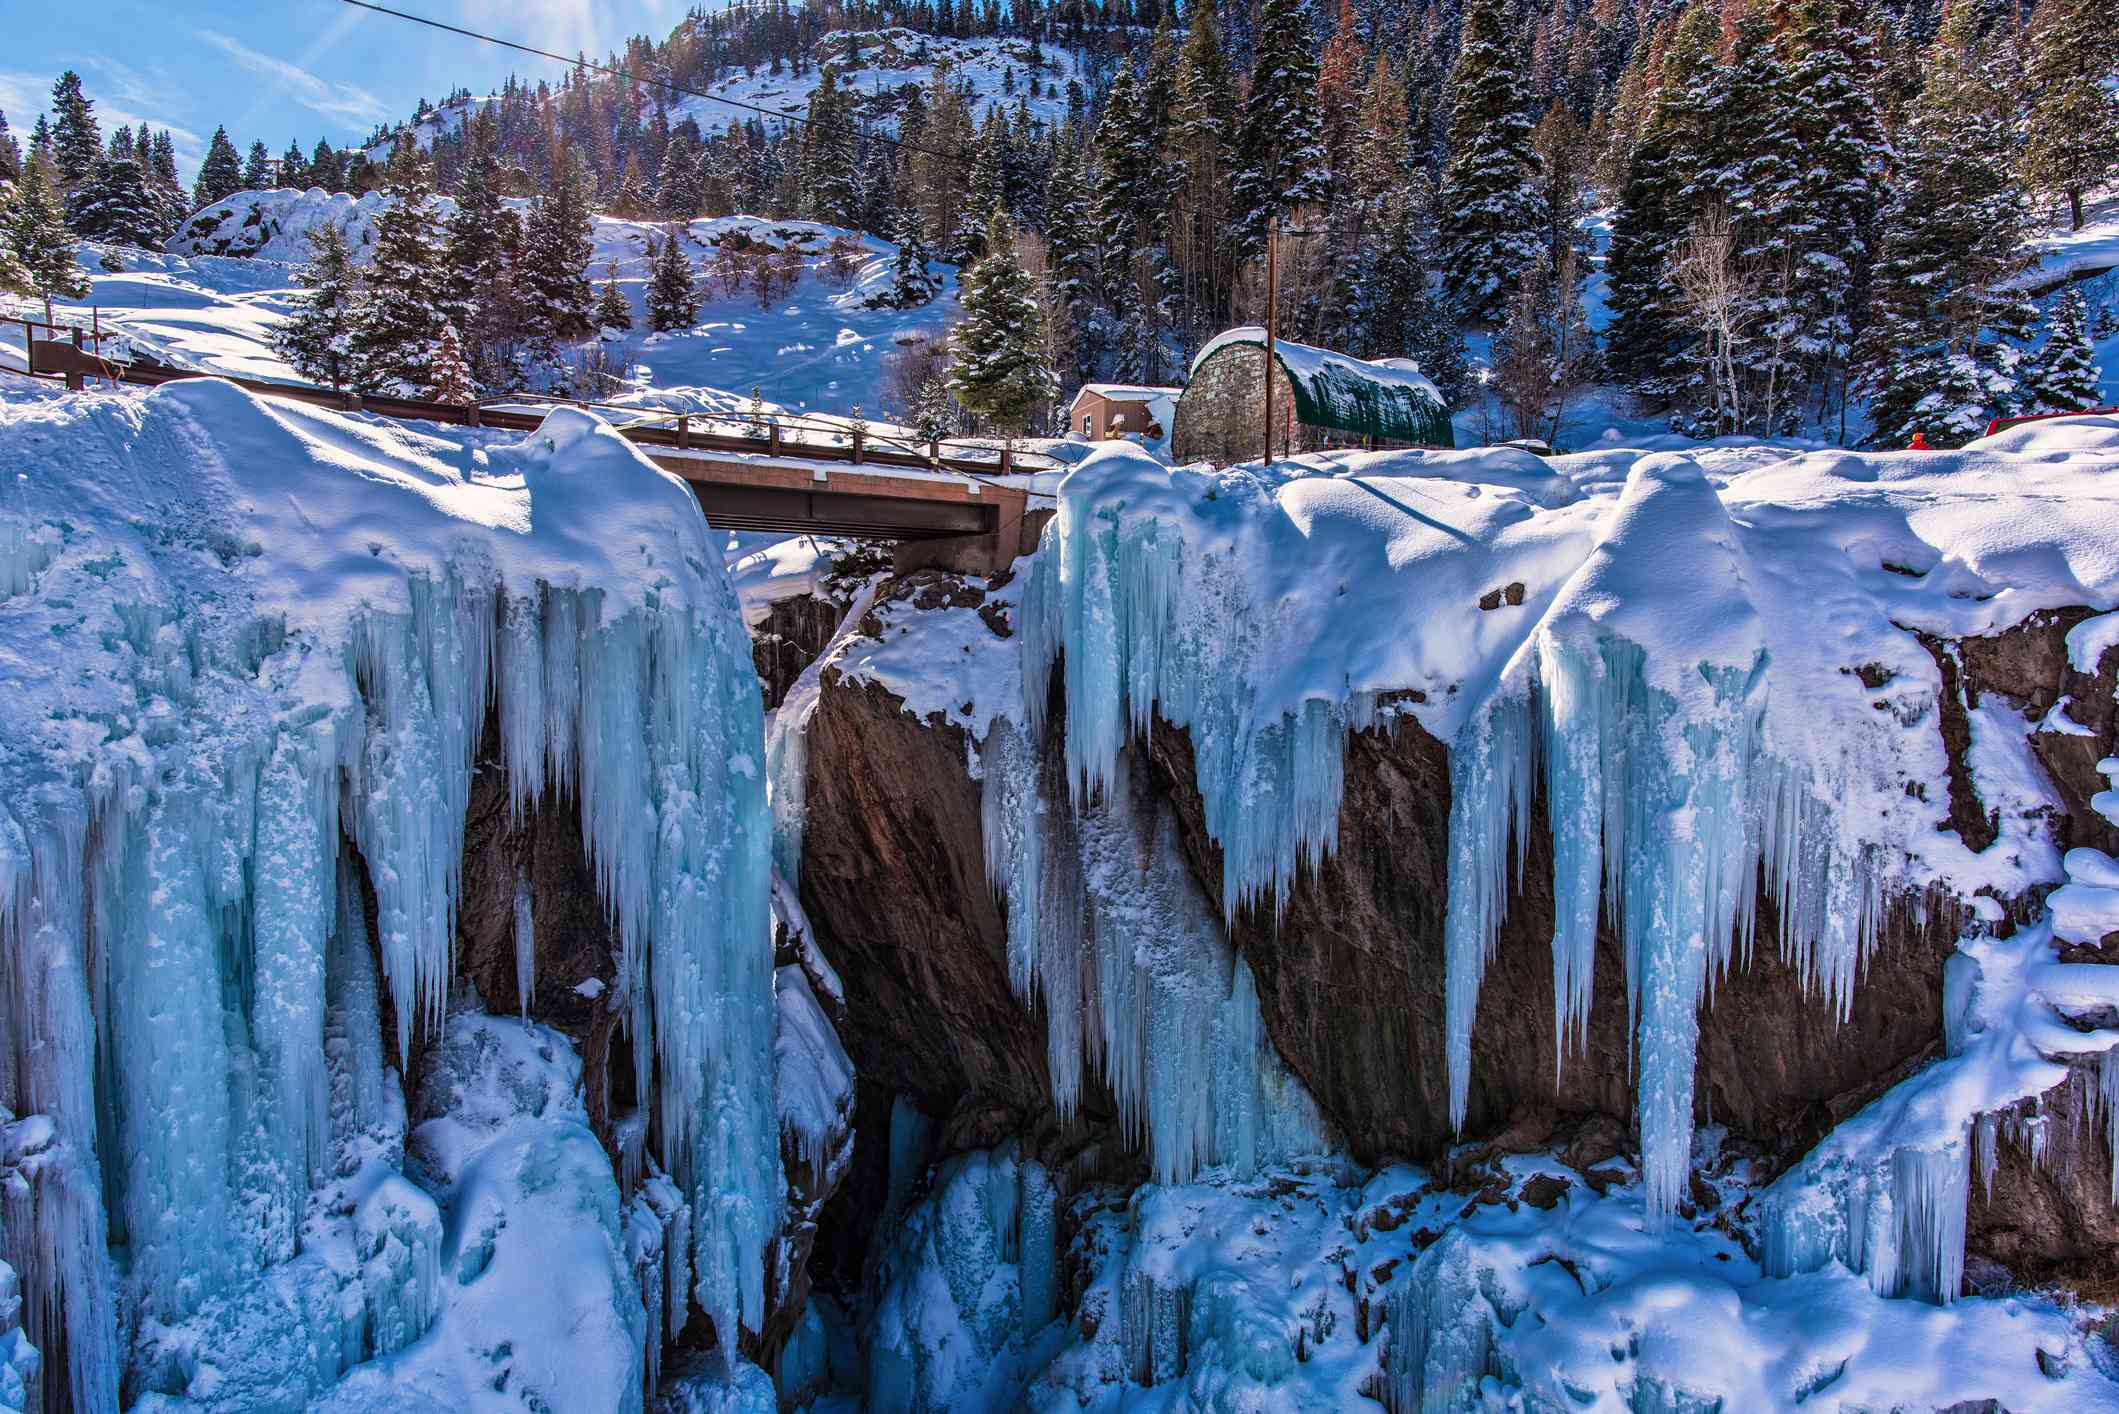 Footbridge between two ice-covered cliffs in Ouray